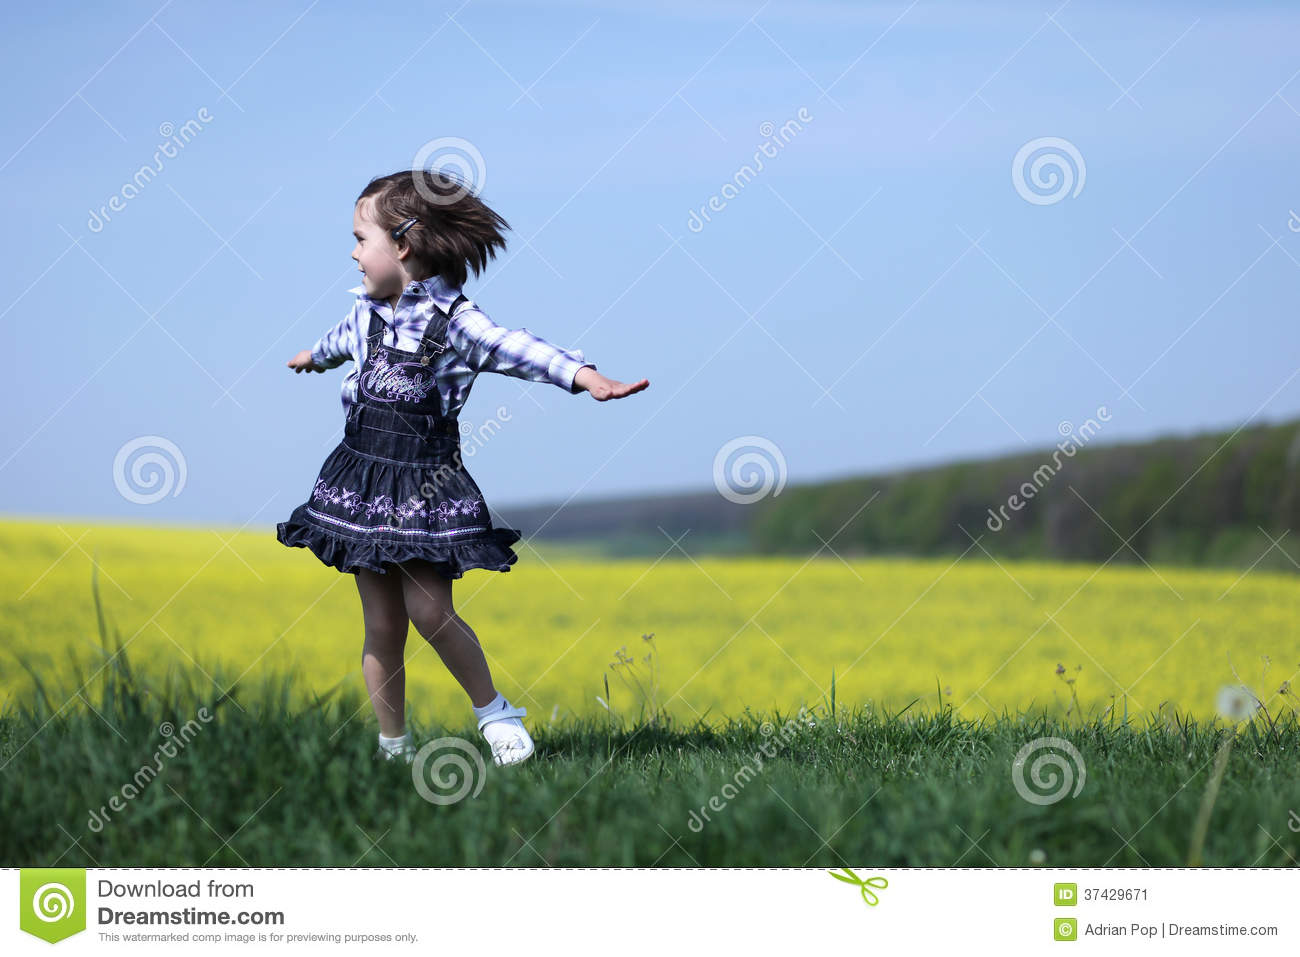 Looking For Spring Greenery On Sunny >> Young Girl Spinning Stock Image - Image: 37429671